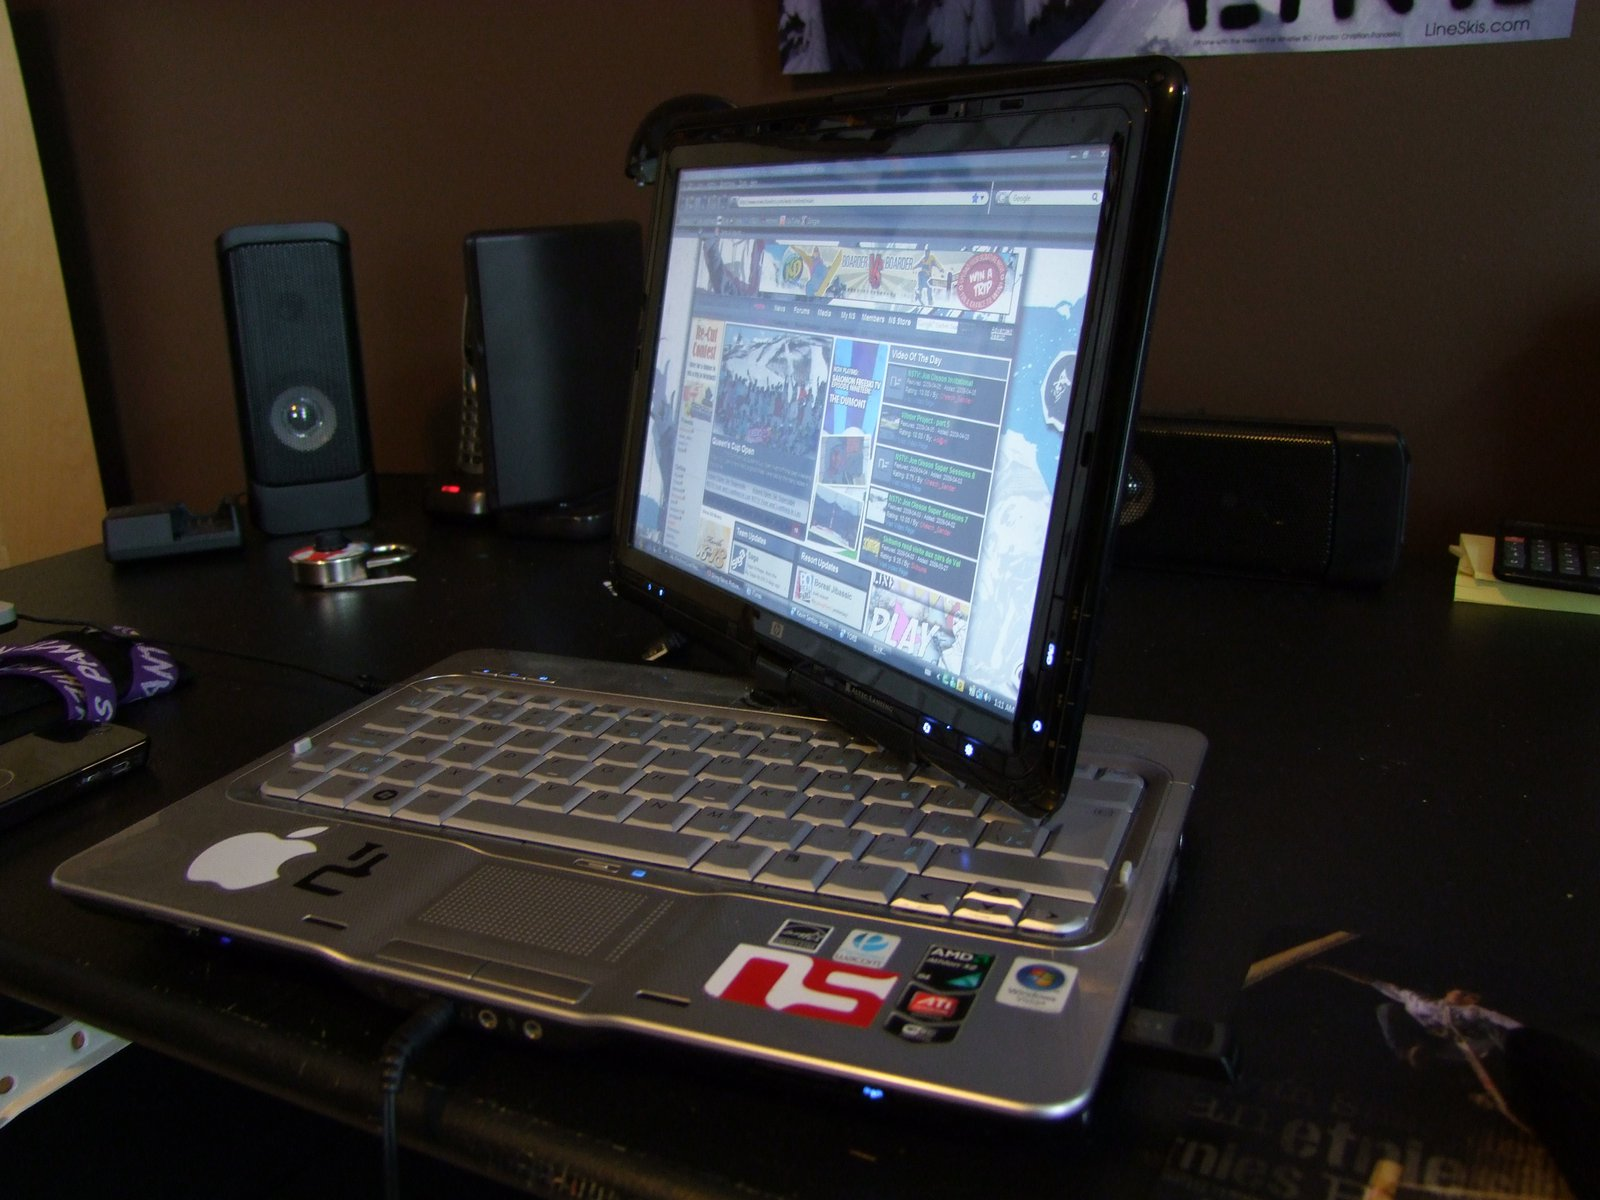 Laptop and desk for forum - 4 of 4